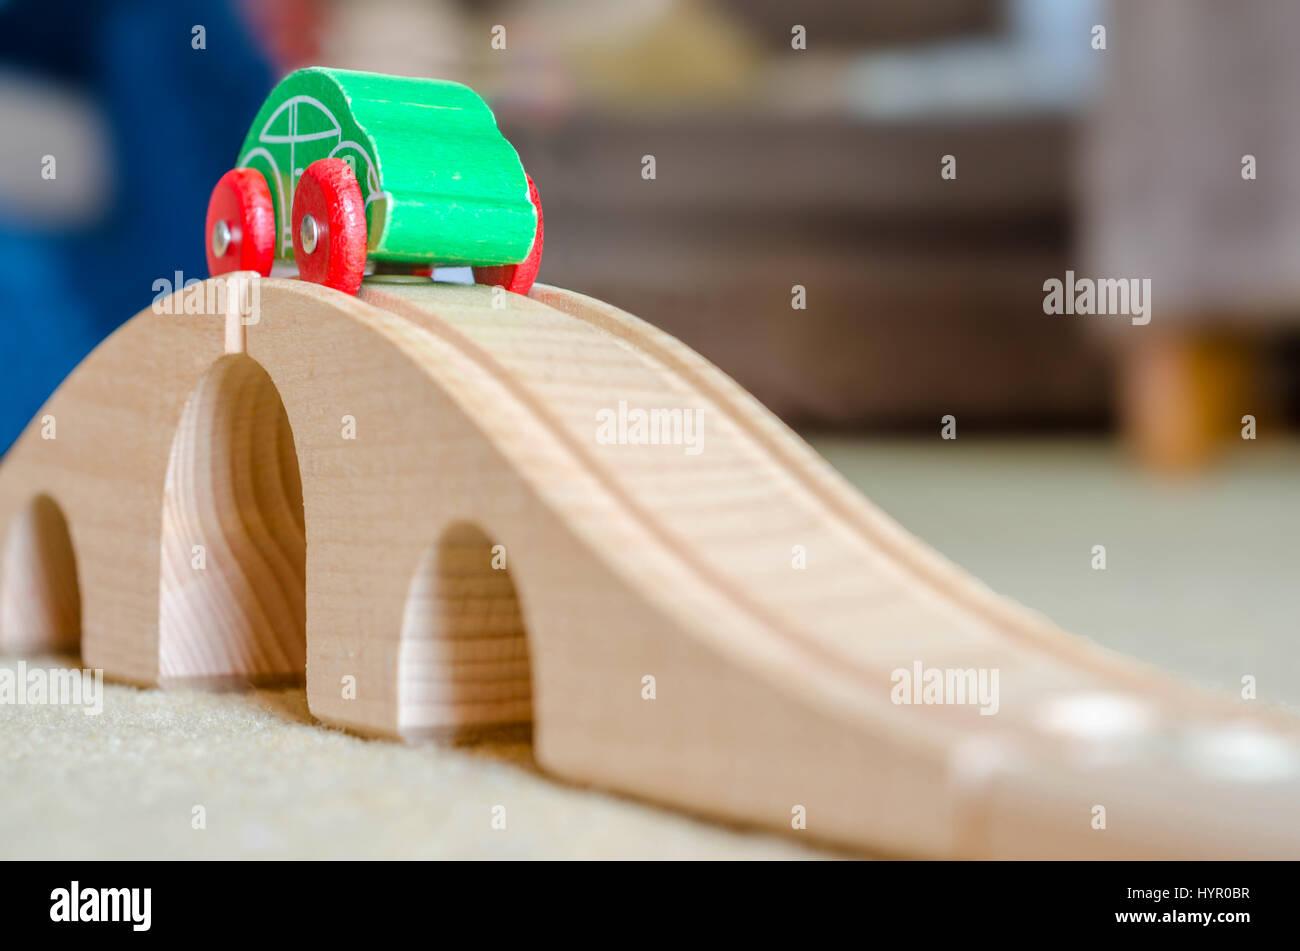 a-toy-wooden-car-on-top-of-a-toy-wooden-